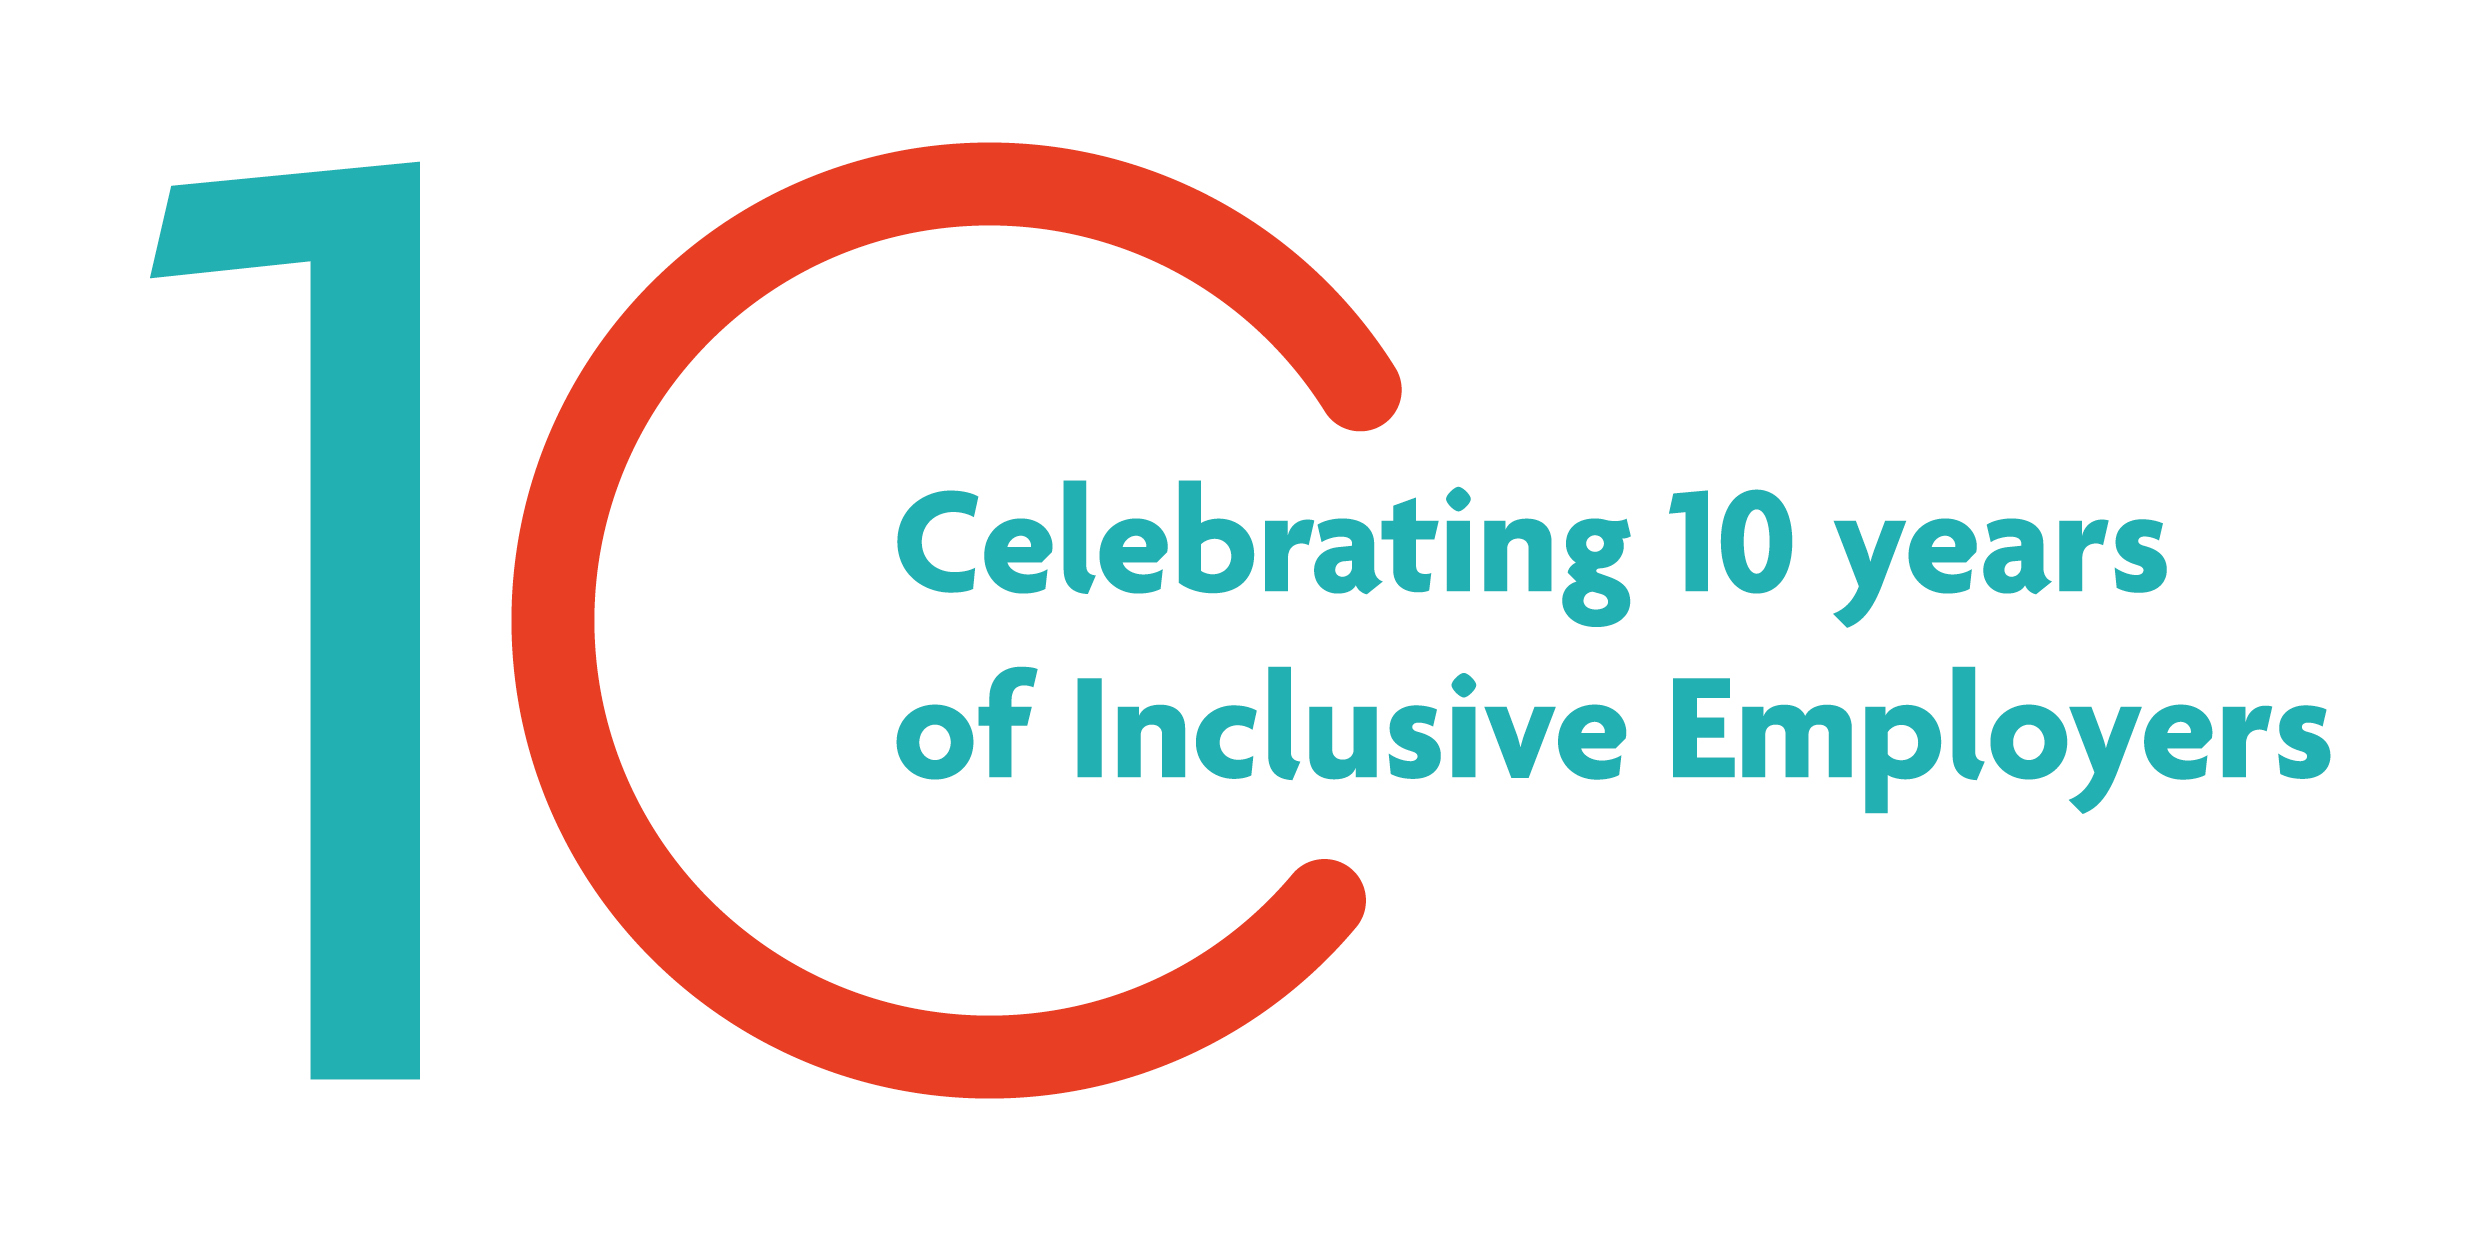 Celebrating 10 years of Inclusive Employers